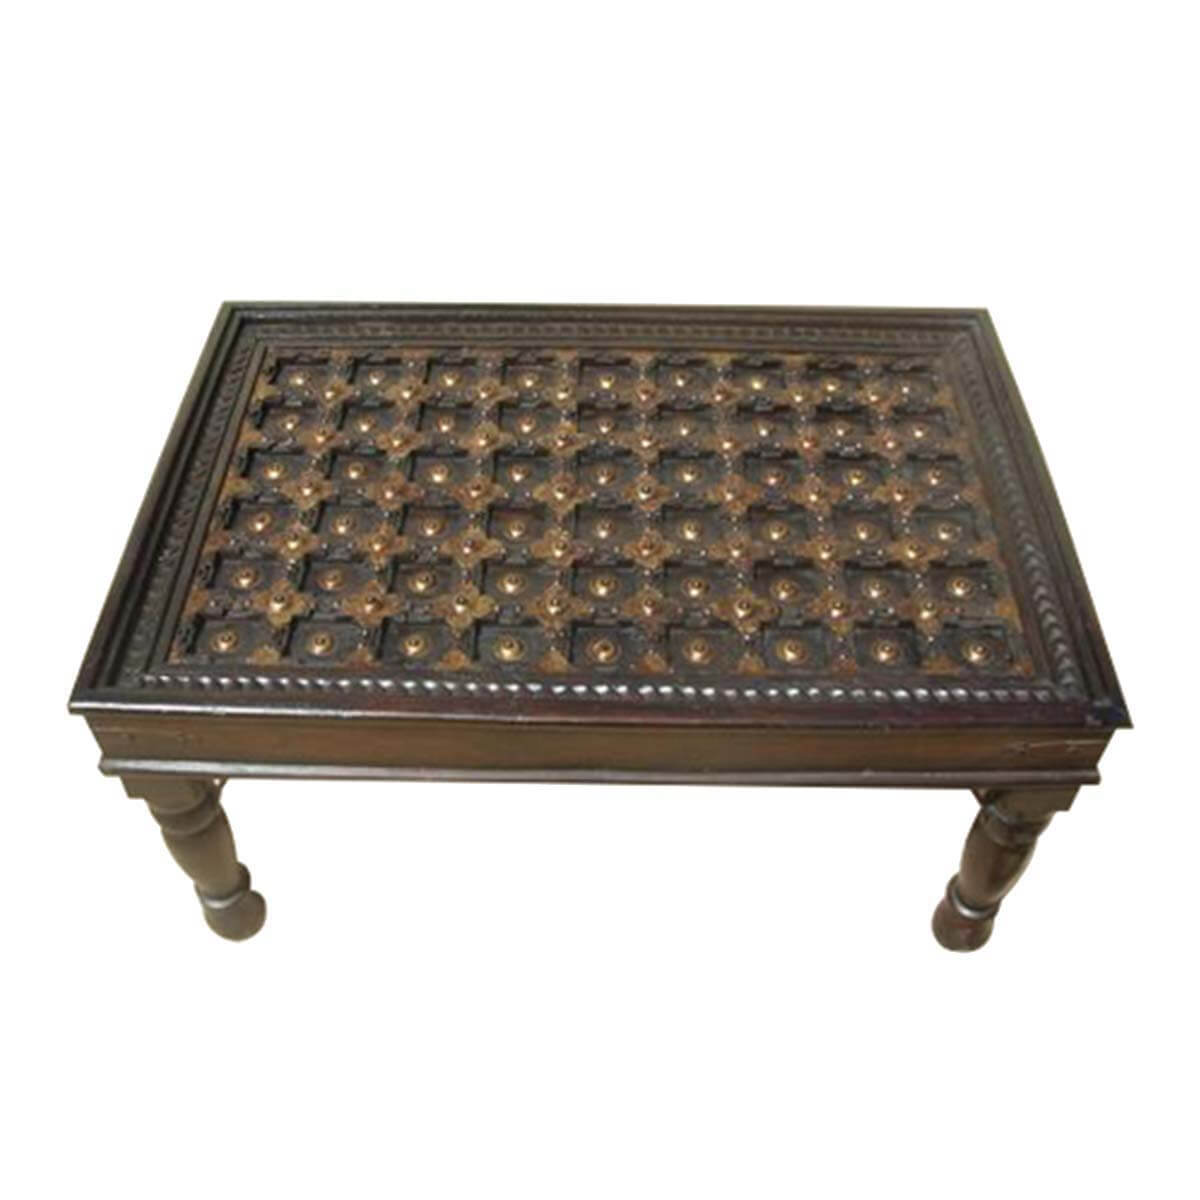 Vintage Wood Coffee Tables: Antique Heritage Design Brass And Mango Wood Coffee